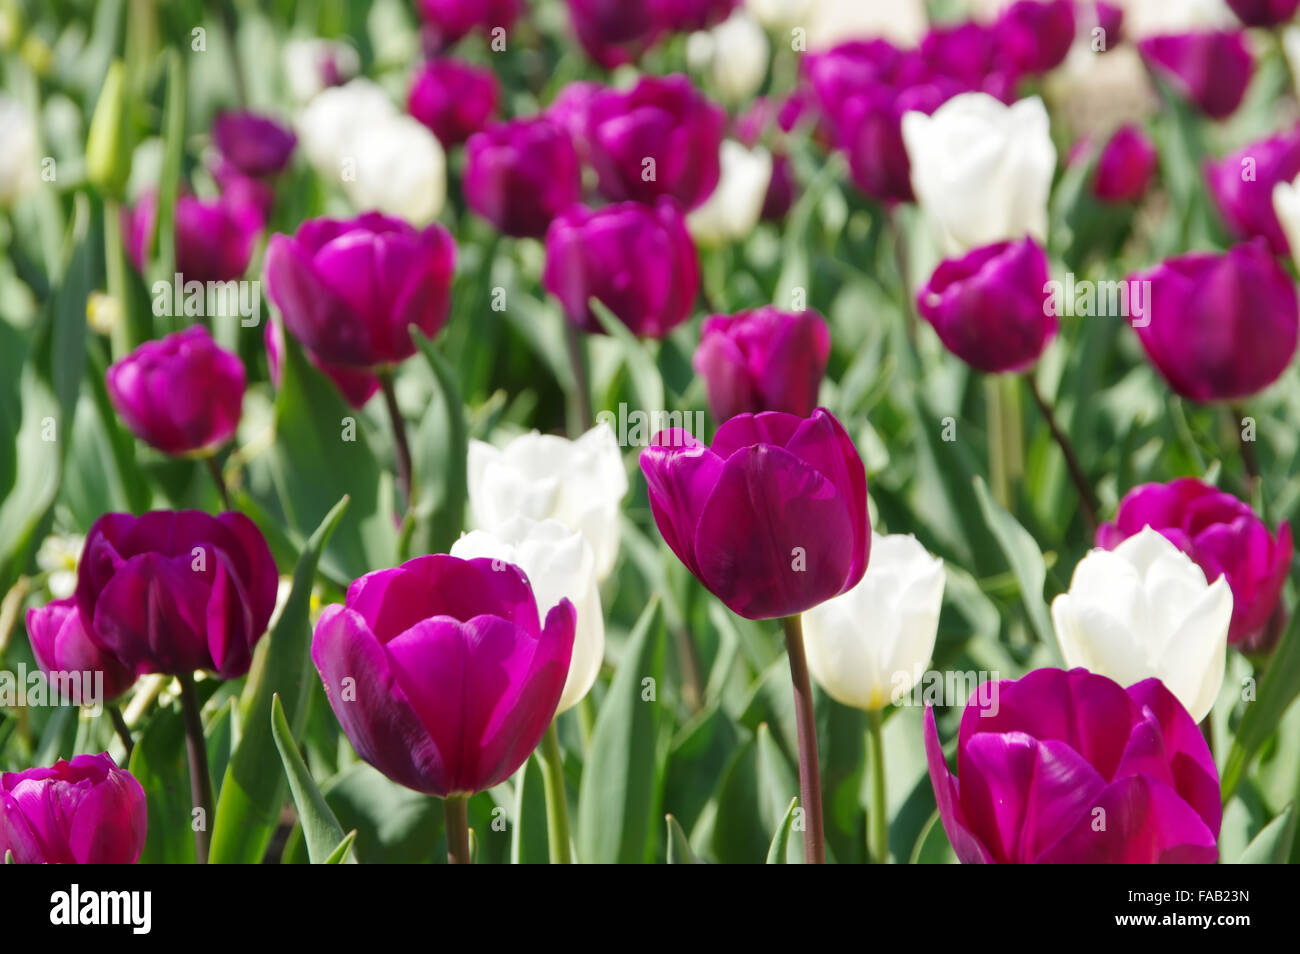 Tulpen lila und weiss - tulips purple and white 01 - Stock Image